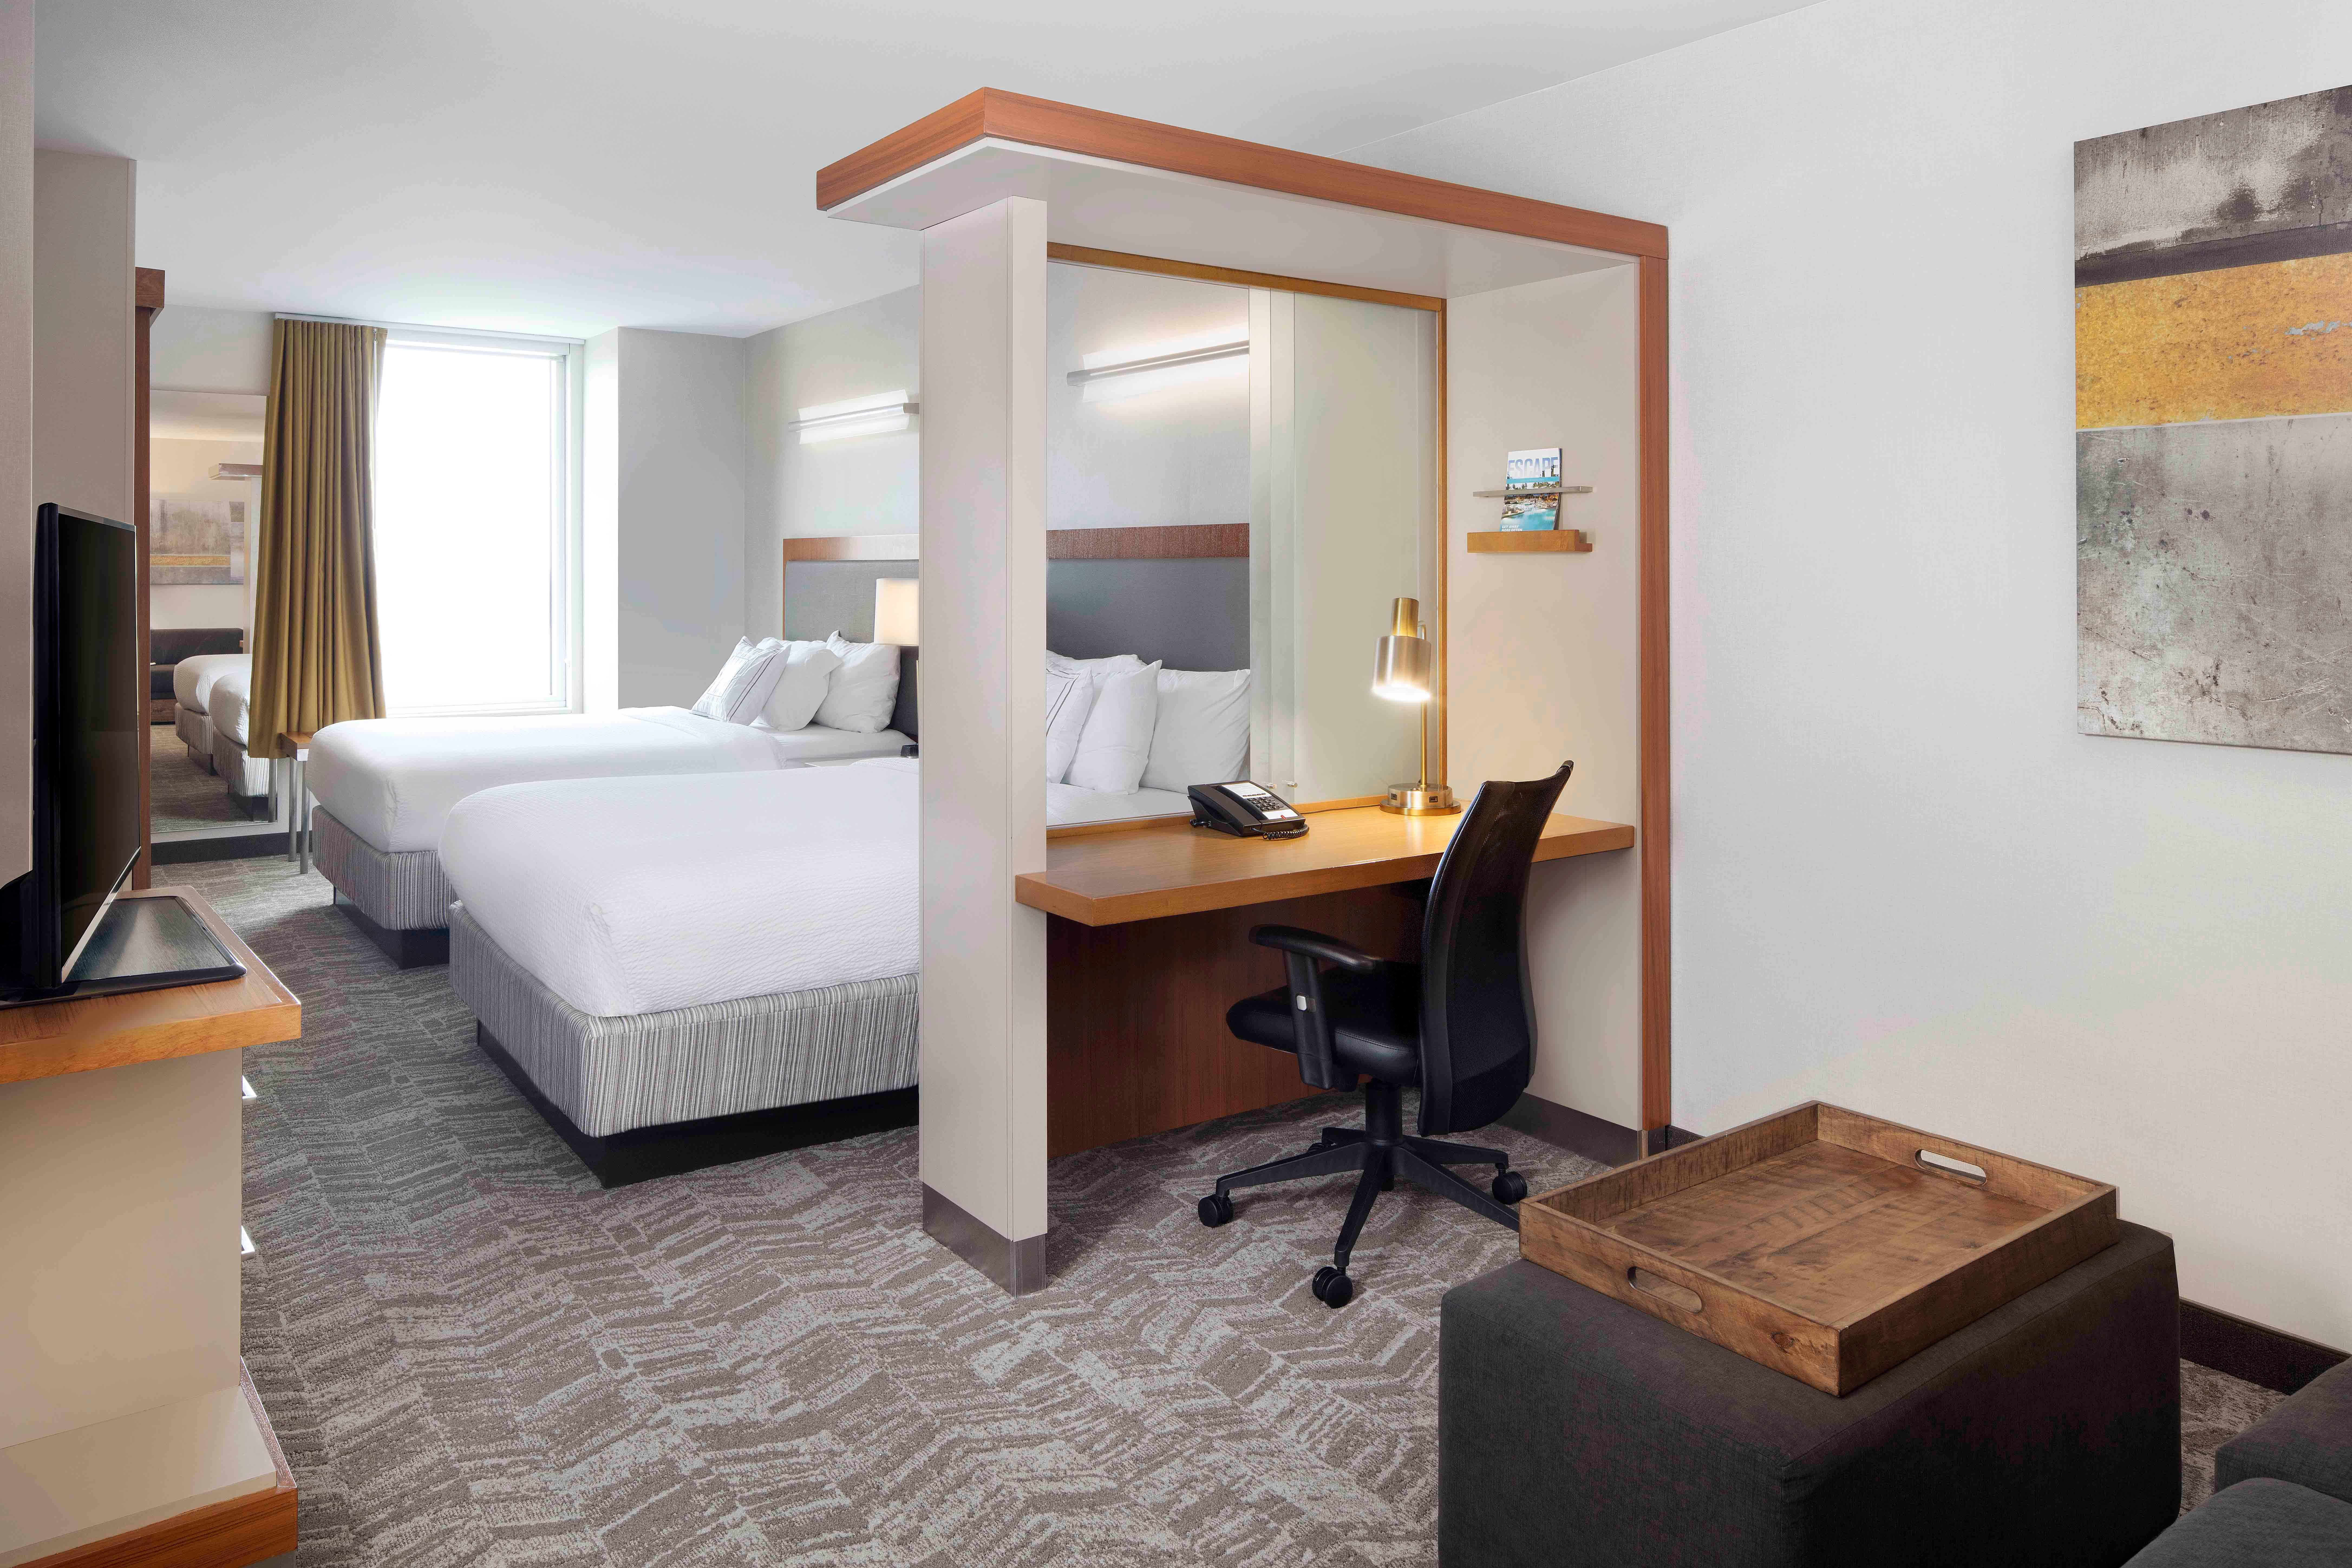 SpringHill Suites by Marriott Indianapolis Downtown image 1